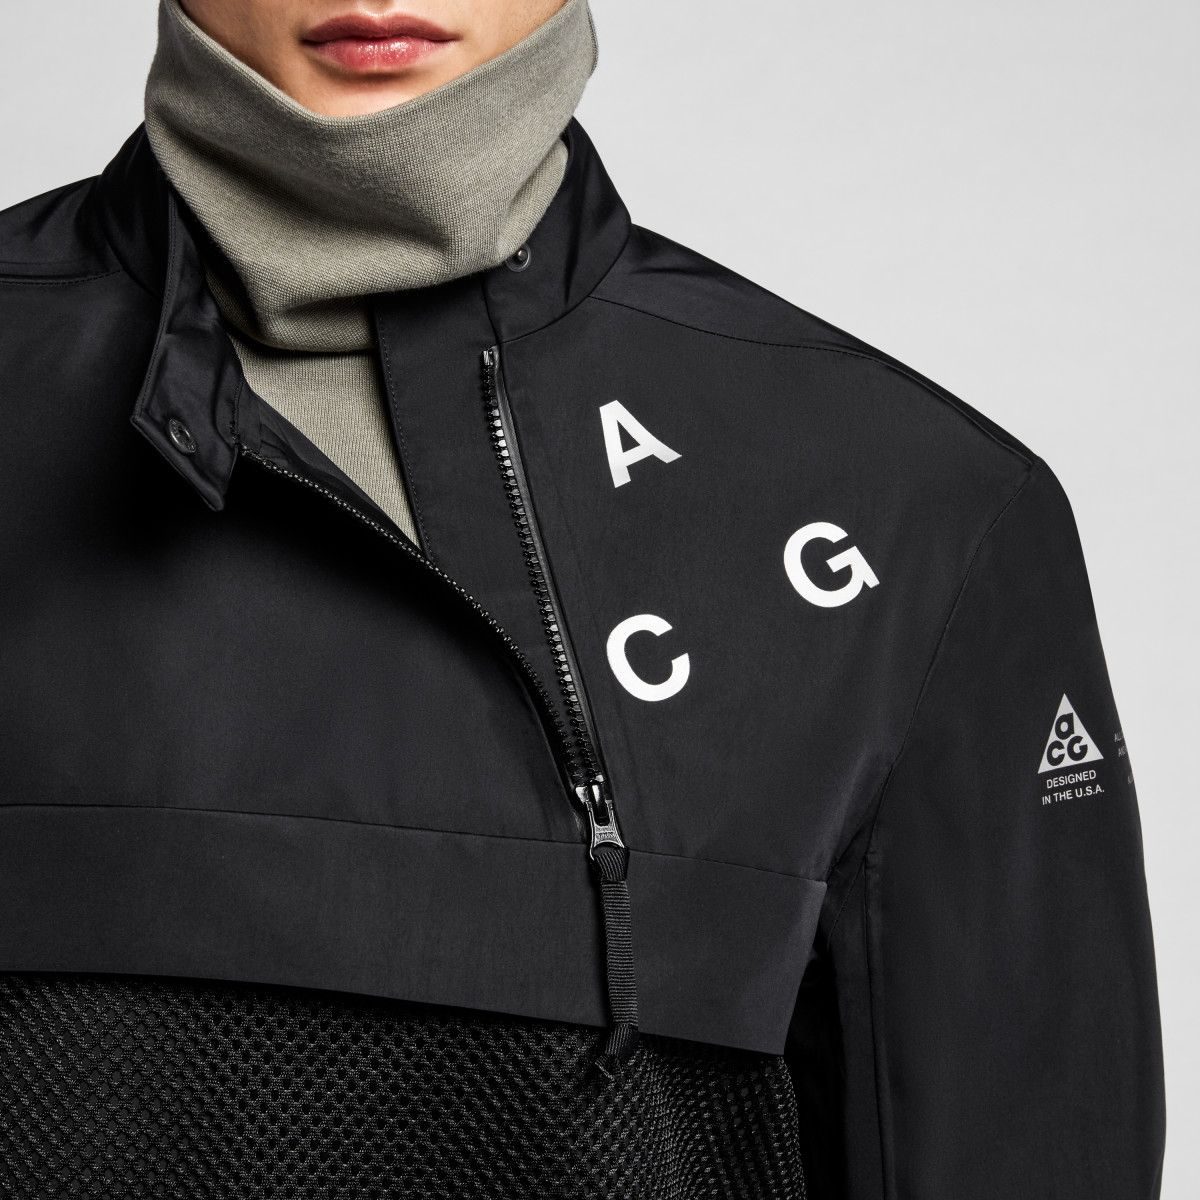 37c32151 For Holiday 2017, NikeLab ACG delivers a new collection made to protect  against the elements. According to designer Johanna Schneider,